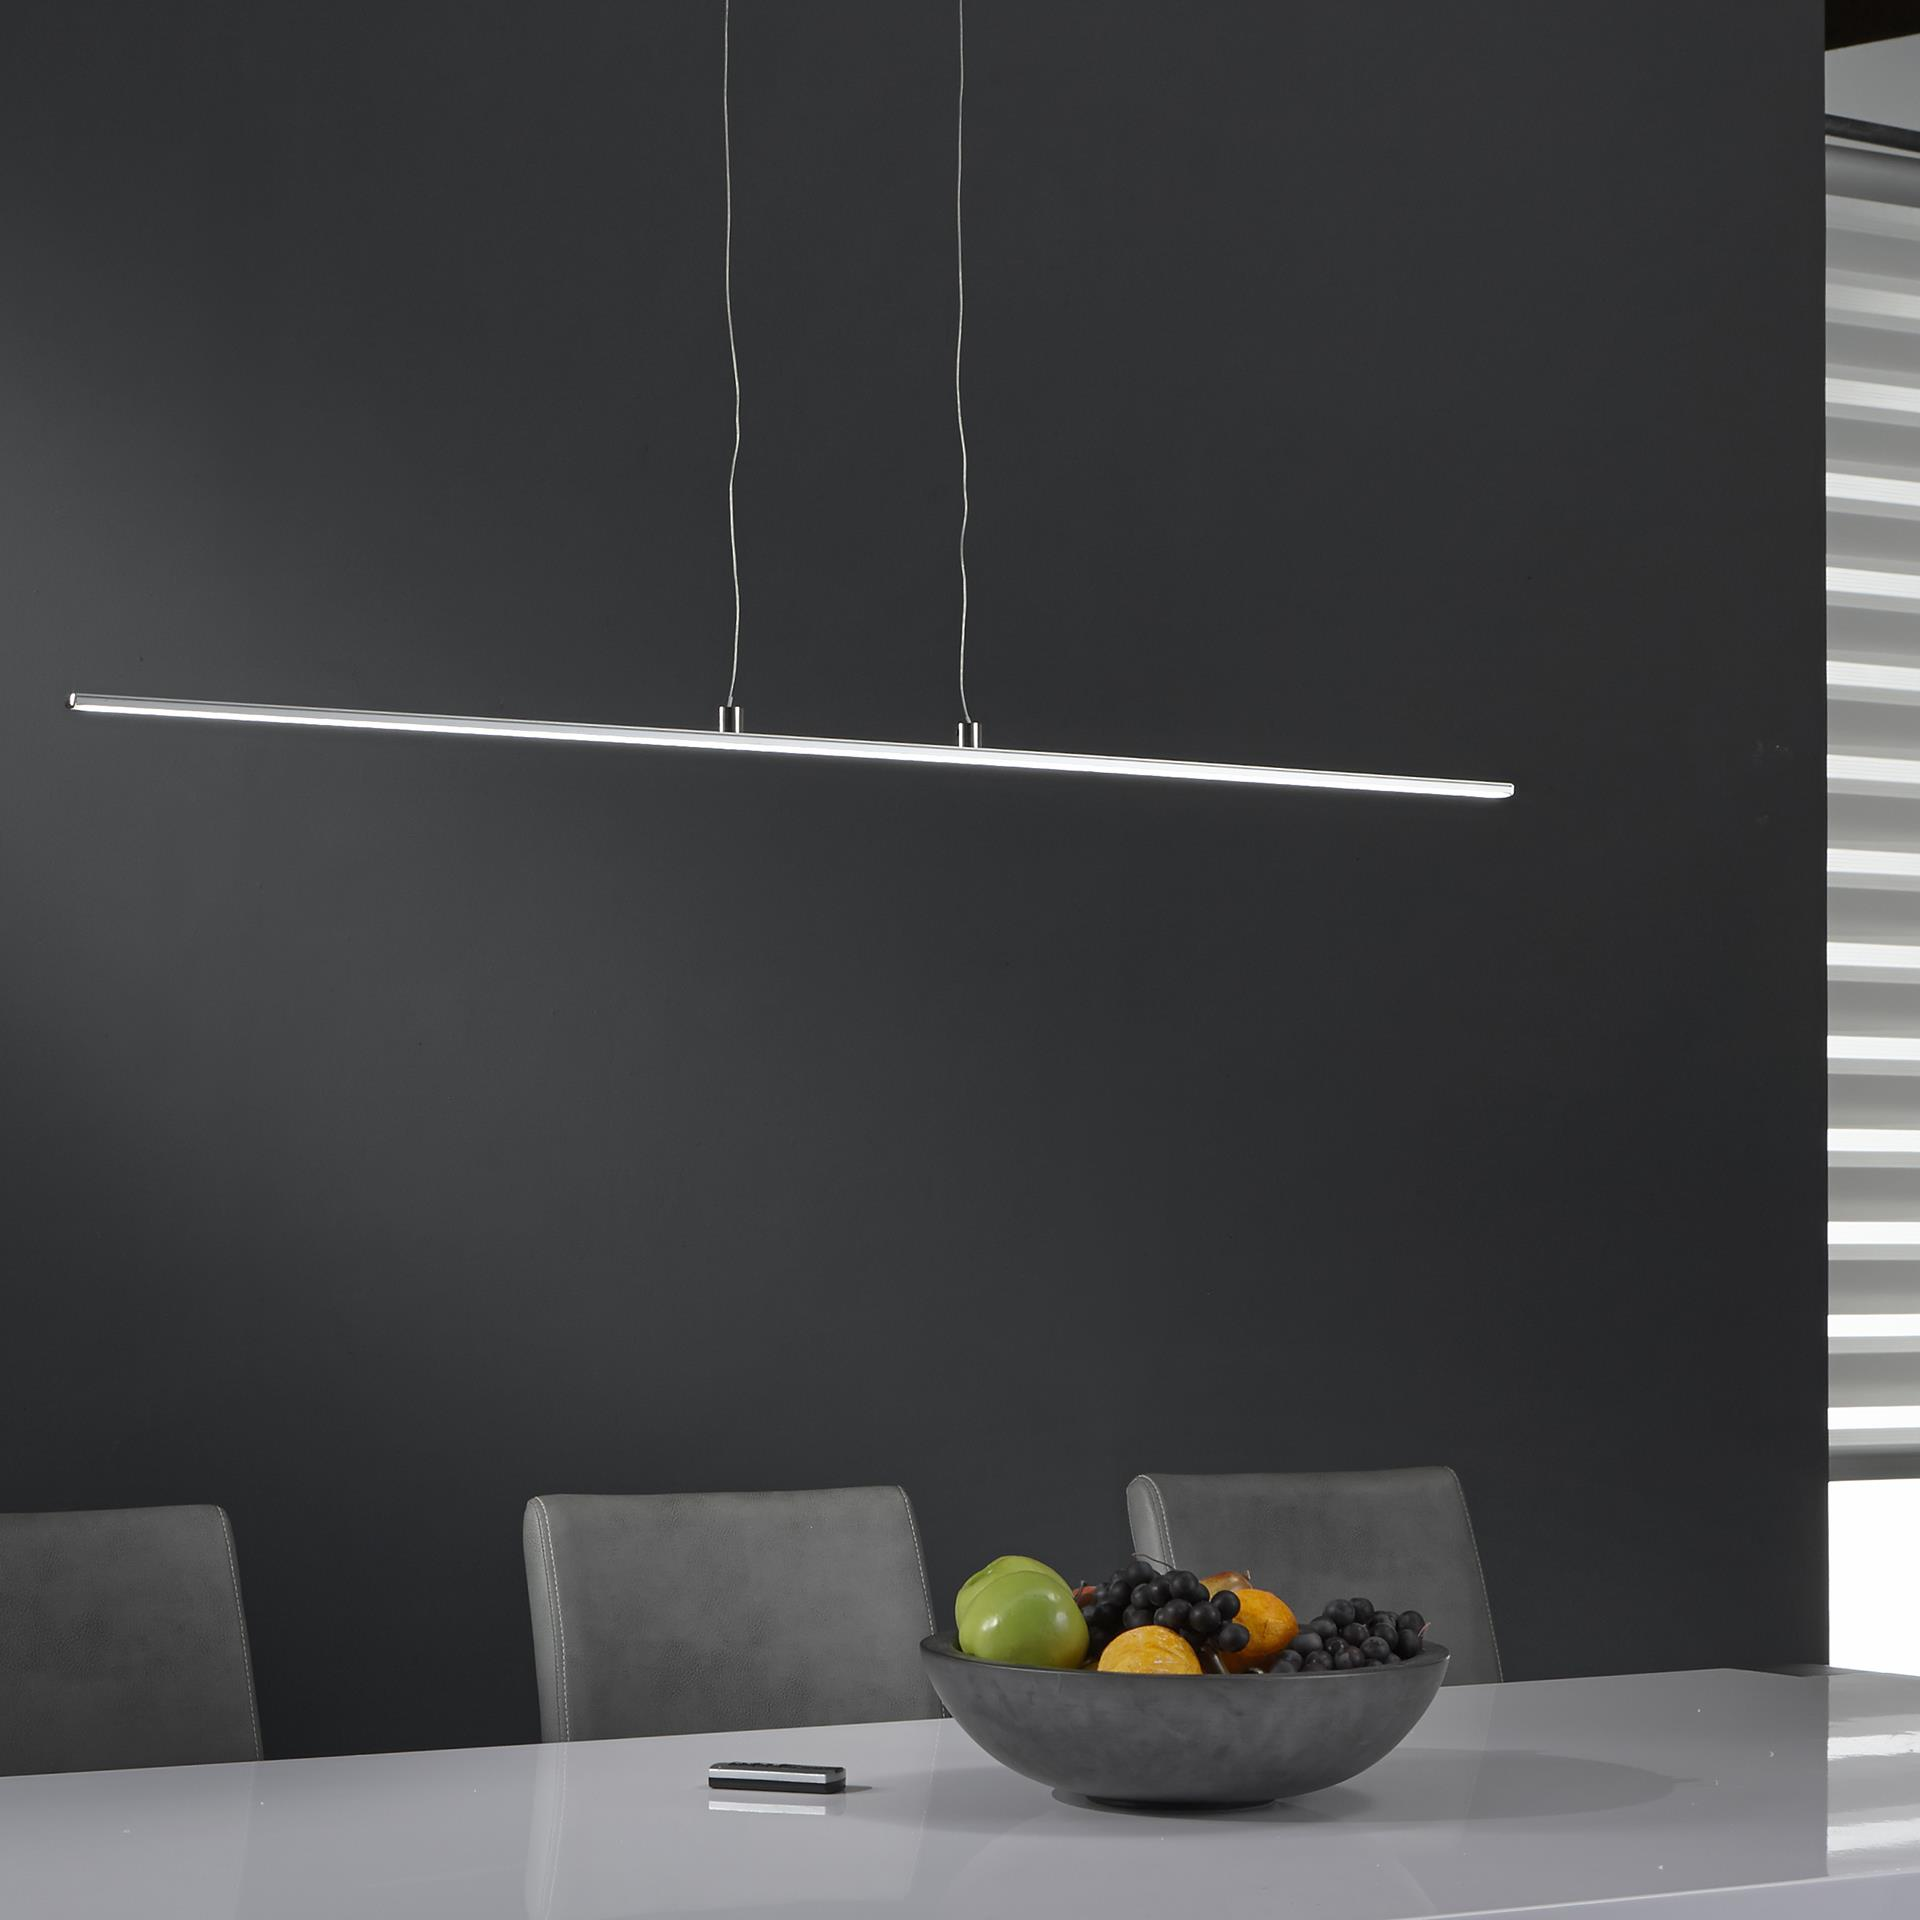 Hanglamp 'Glory', recht LED